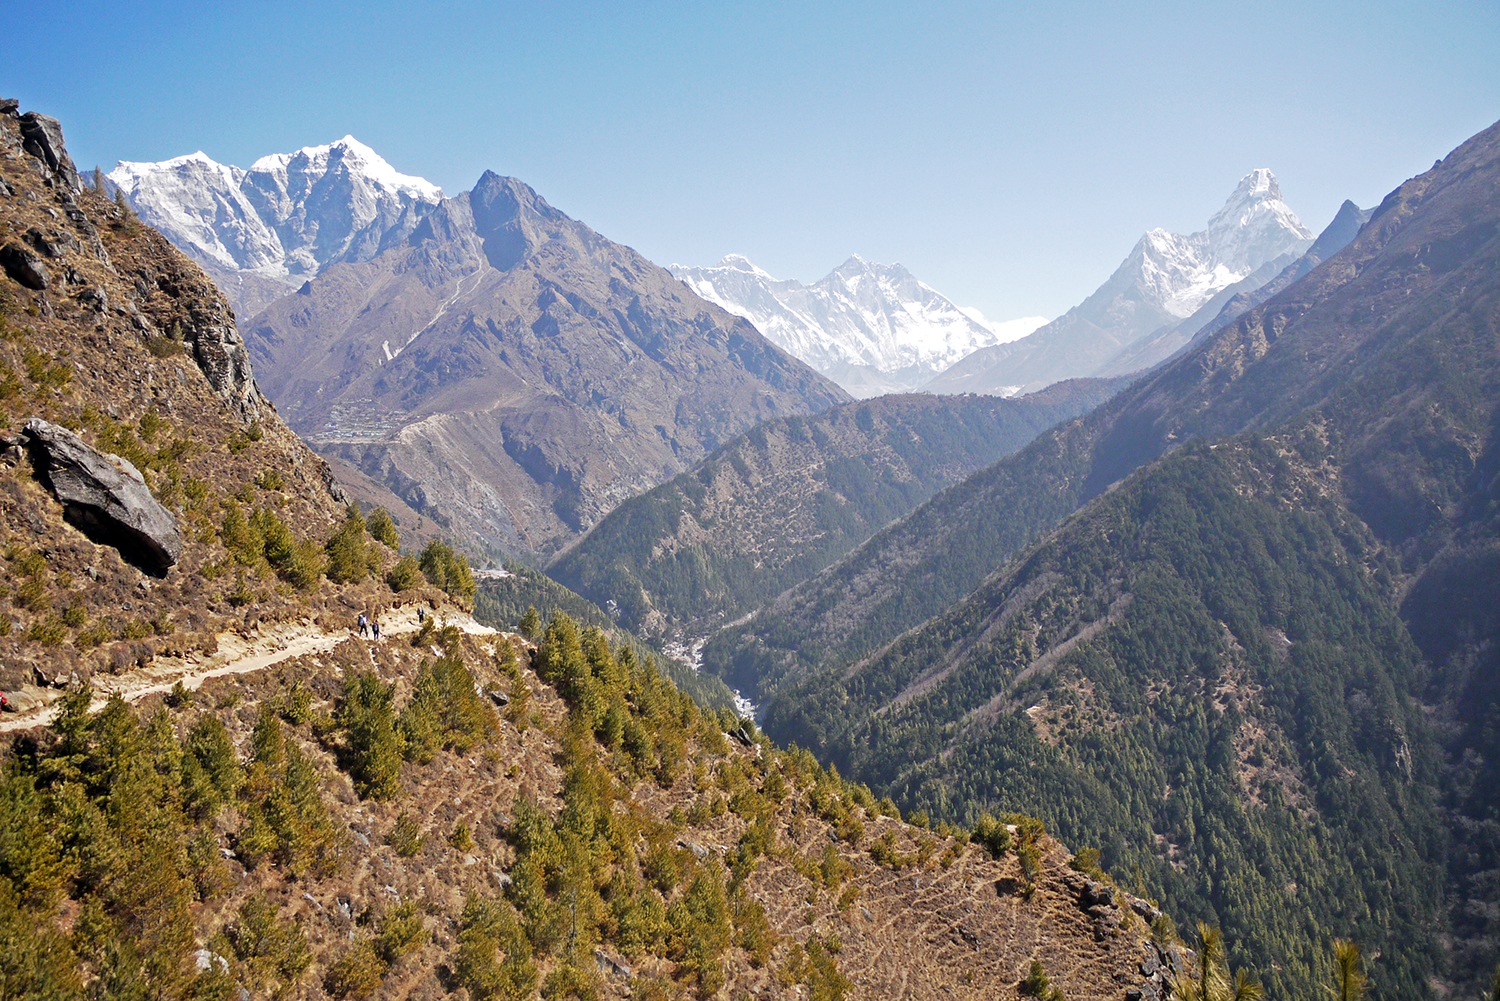 The path out of Namche Bazzar